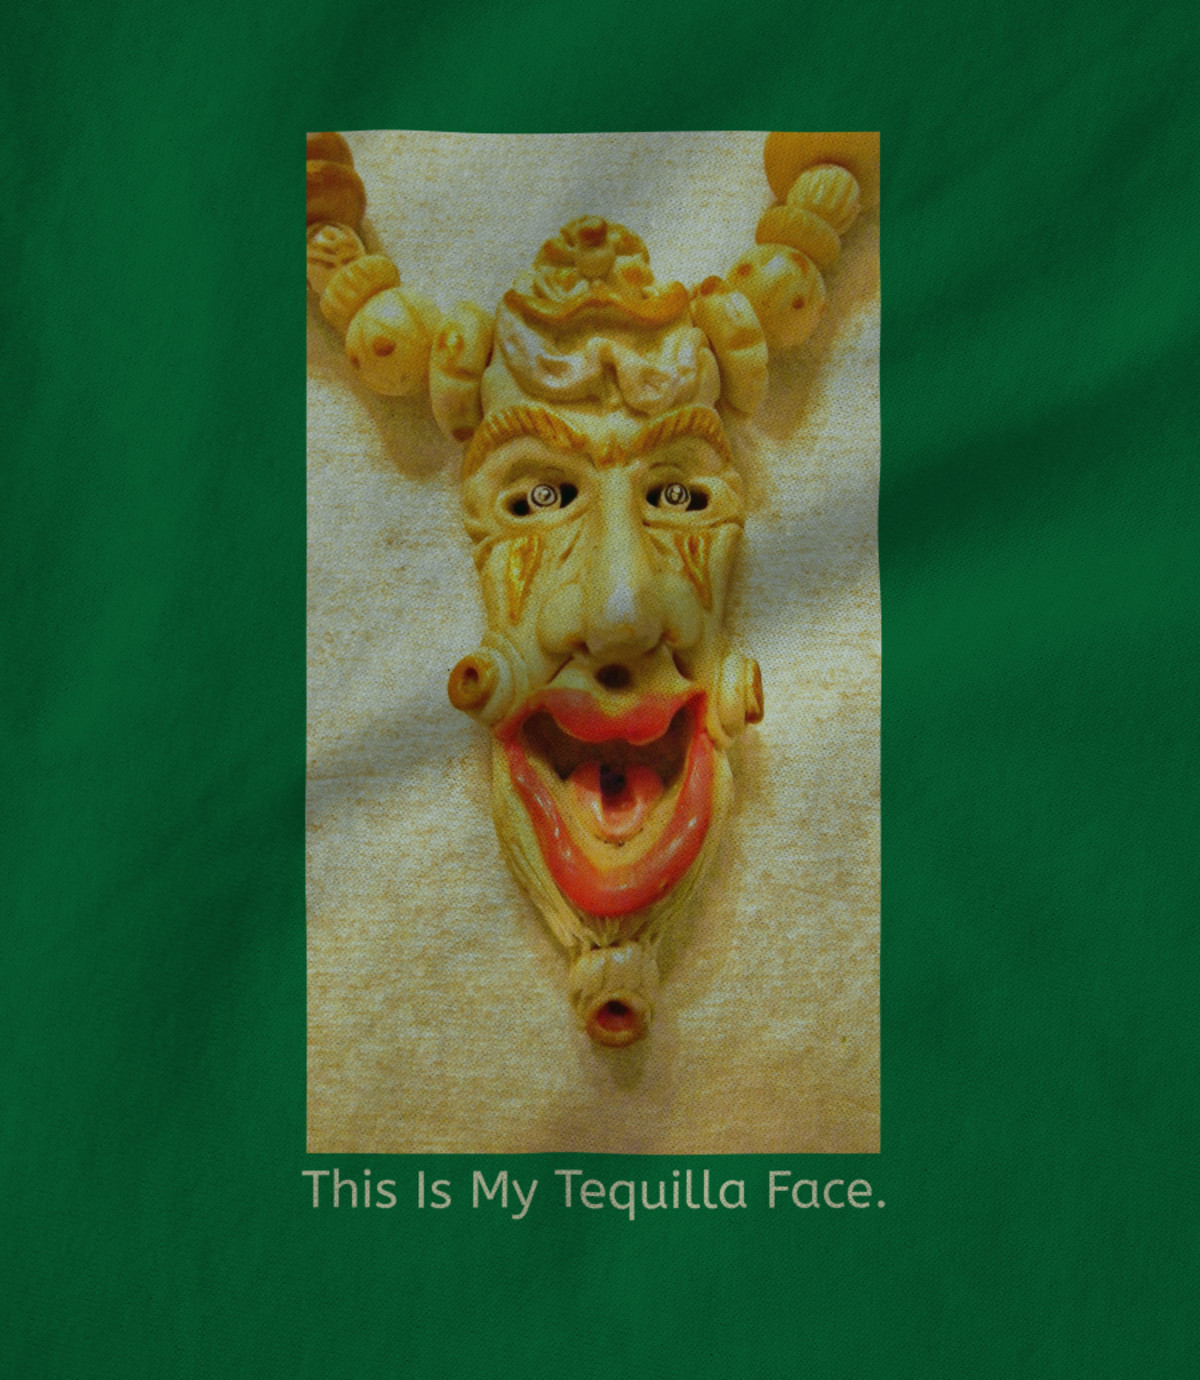 Matthew f  blowers iii this is my tequilla face   1505943714